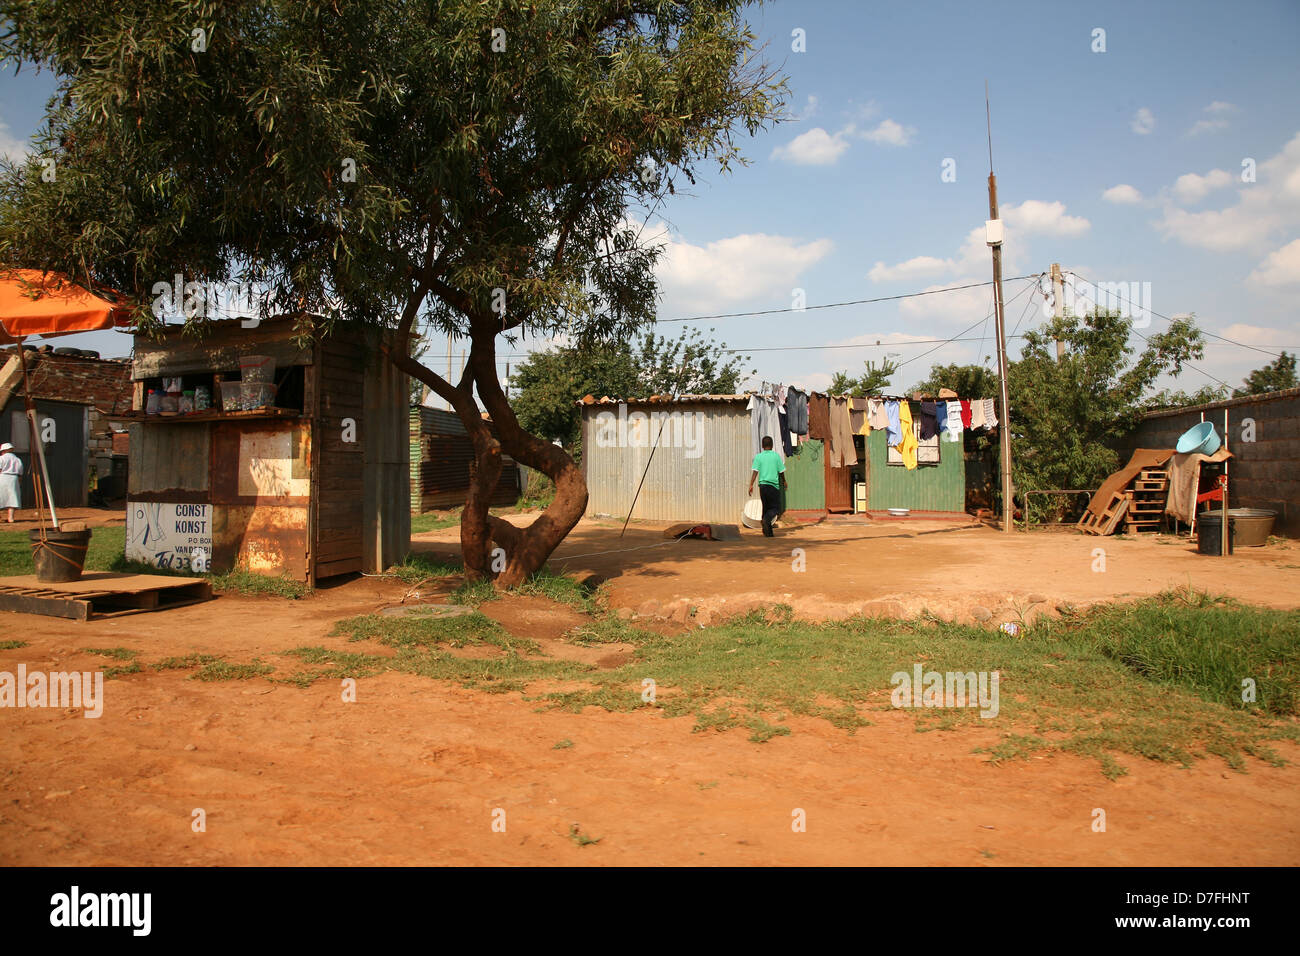 Rural settlement with small bussiness owners Stock Photo